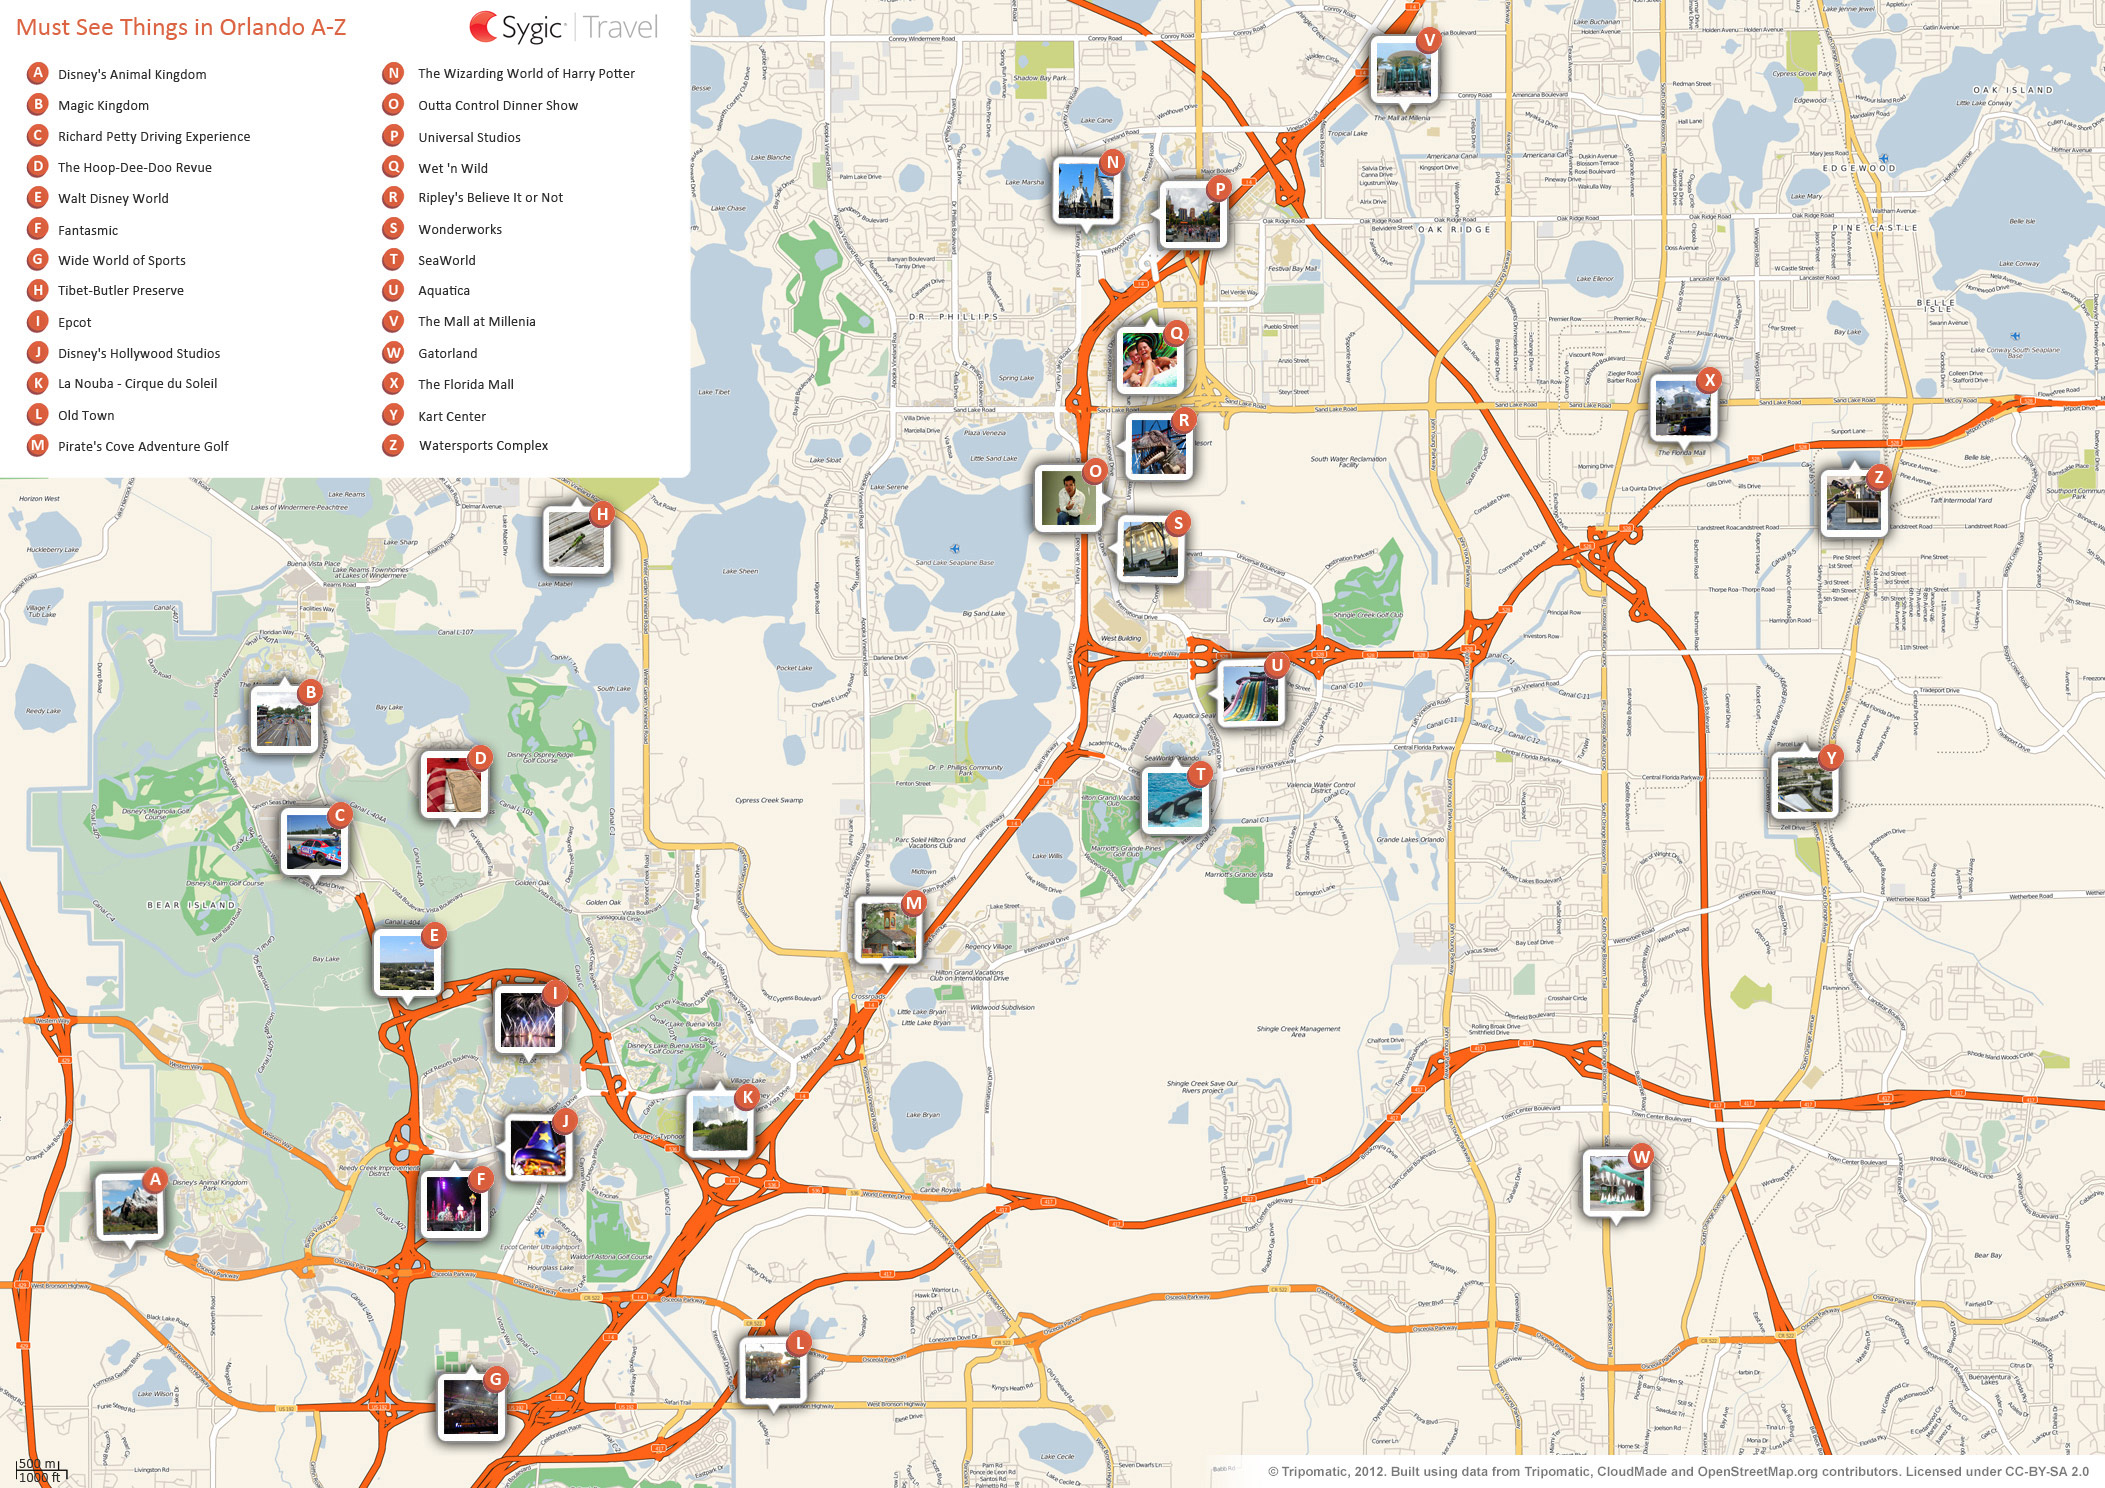 betfred launches mobile lottery offering osga betfred check – Houston Tourist Attractions Map